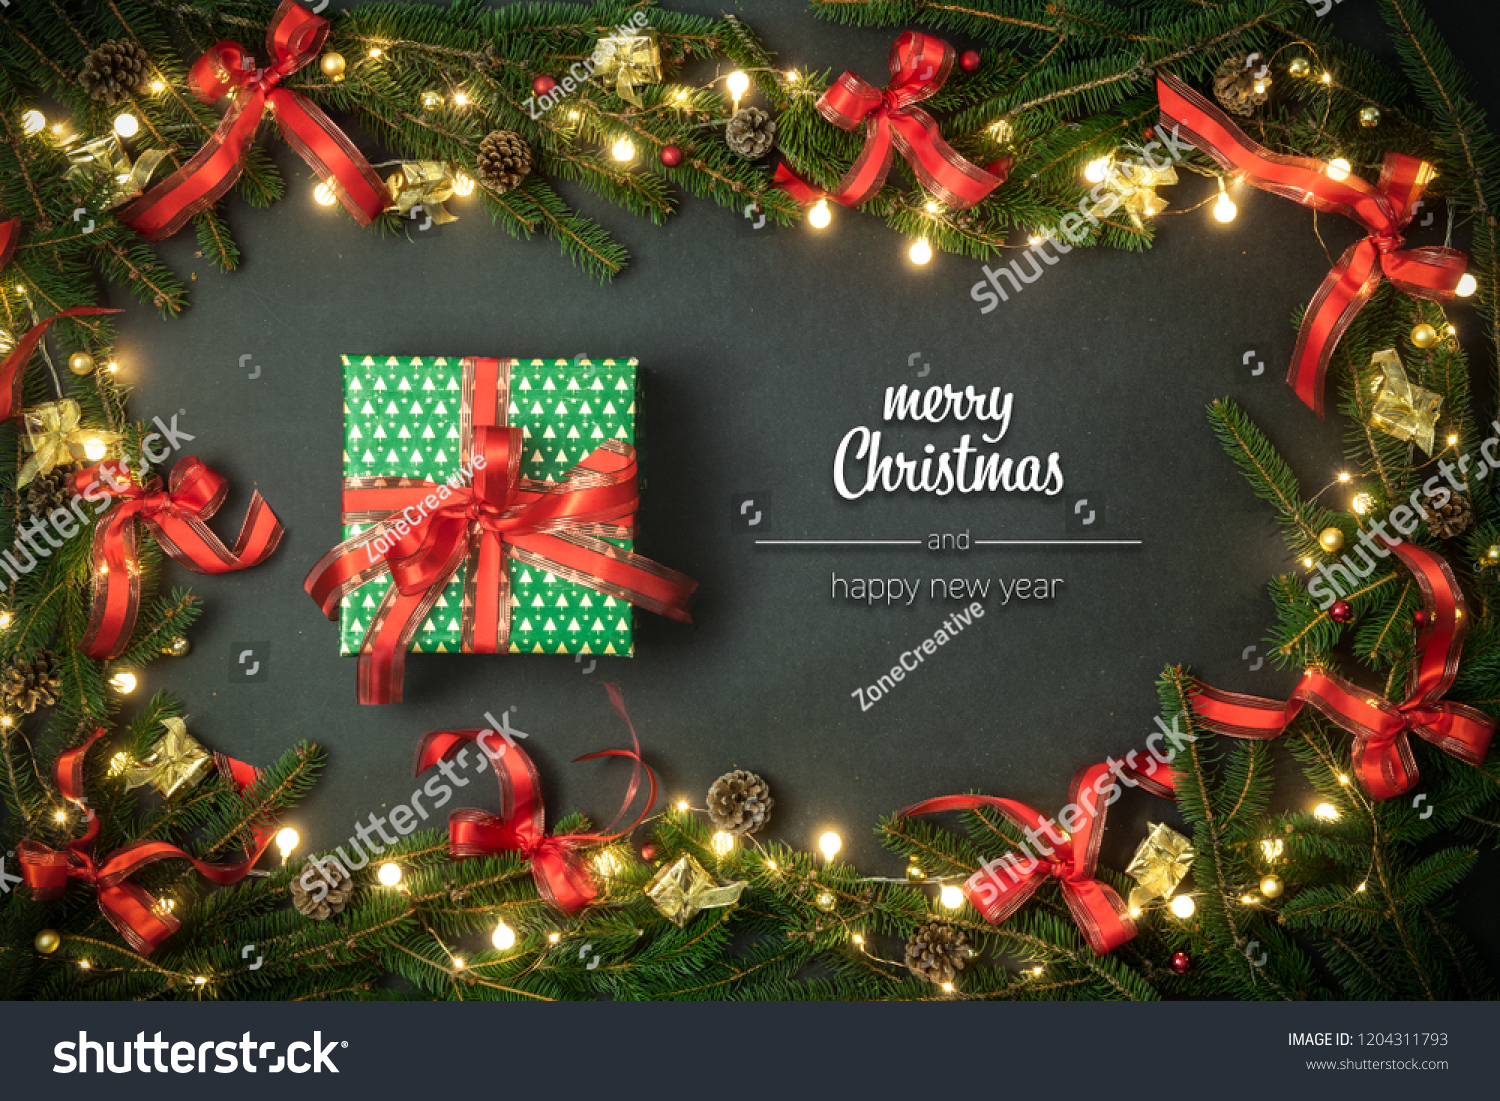 merry christmas and happy new year greetings in vertical top view dark blackboard with pine branches